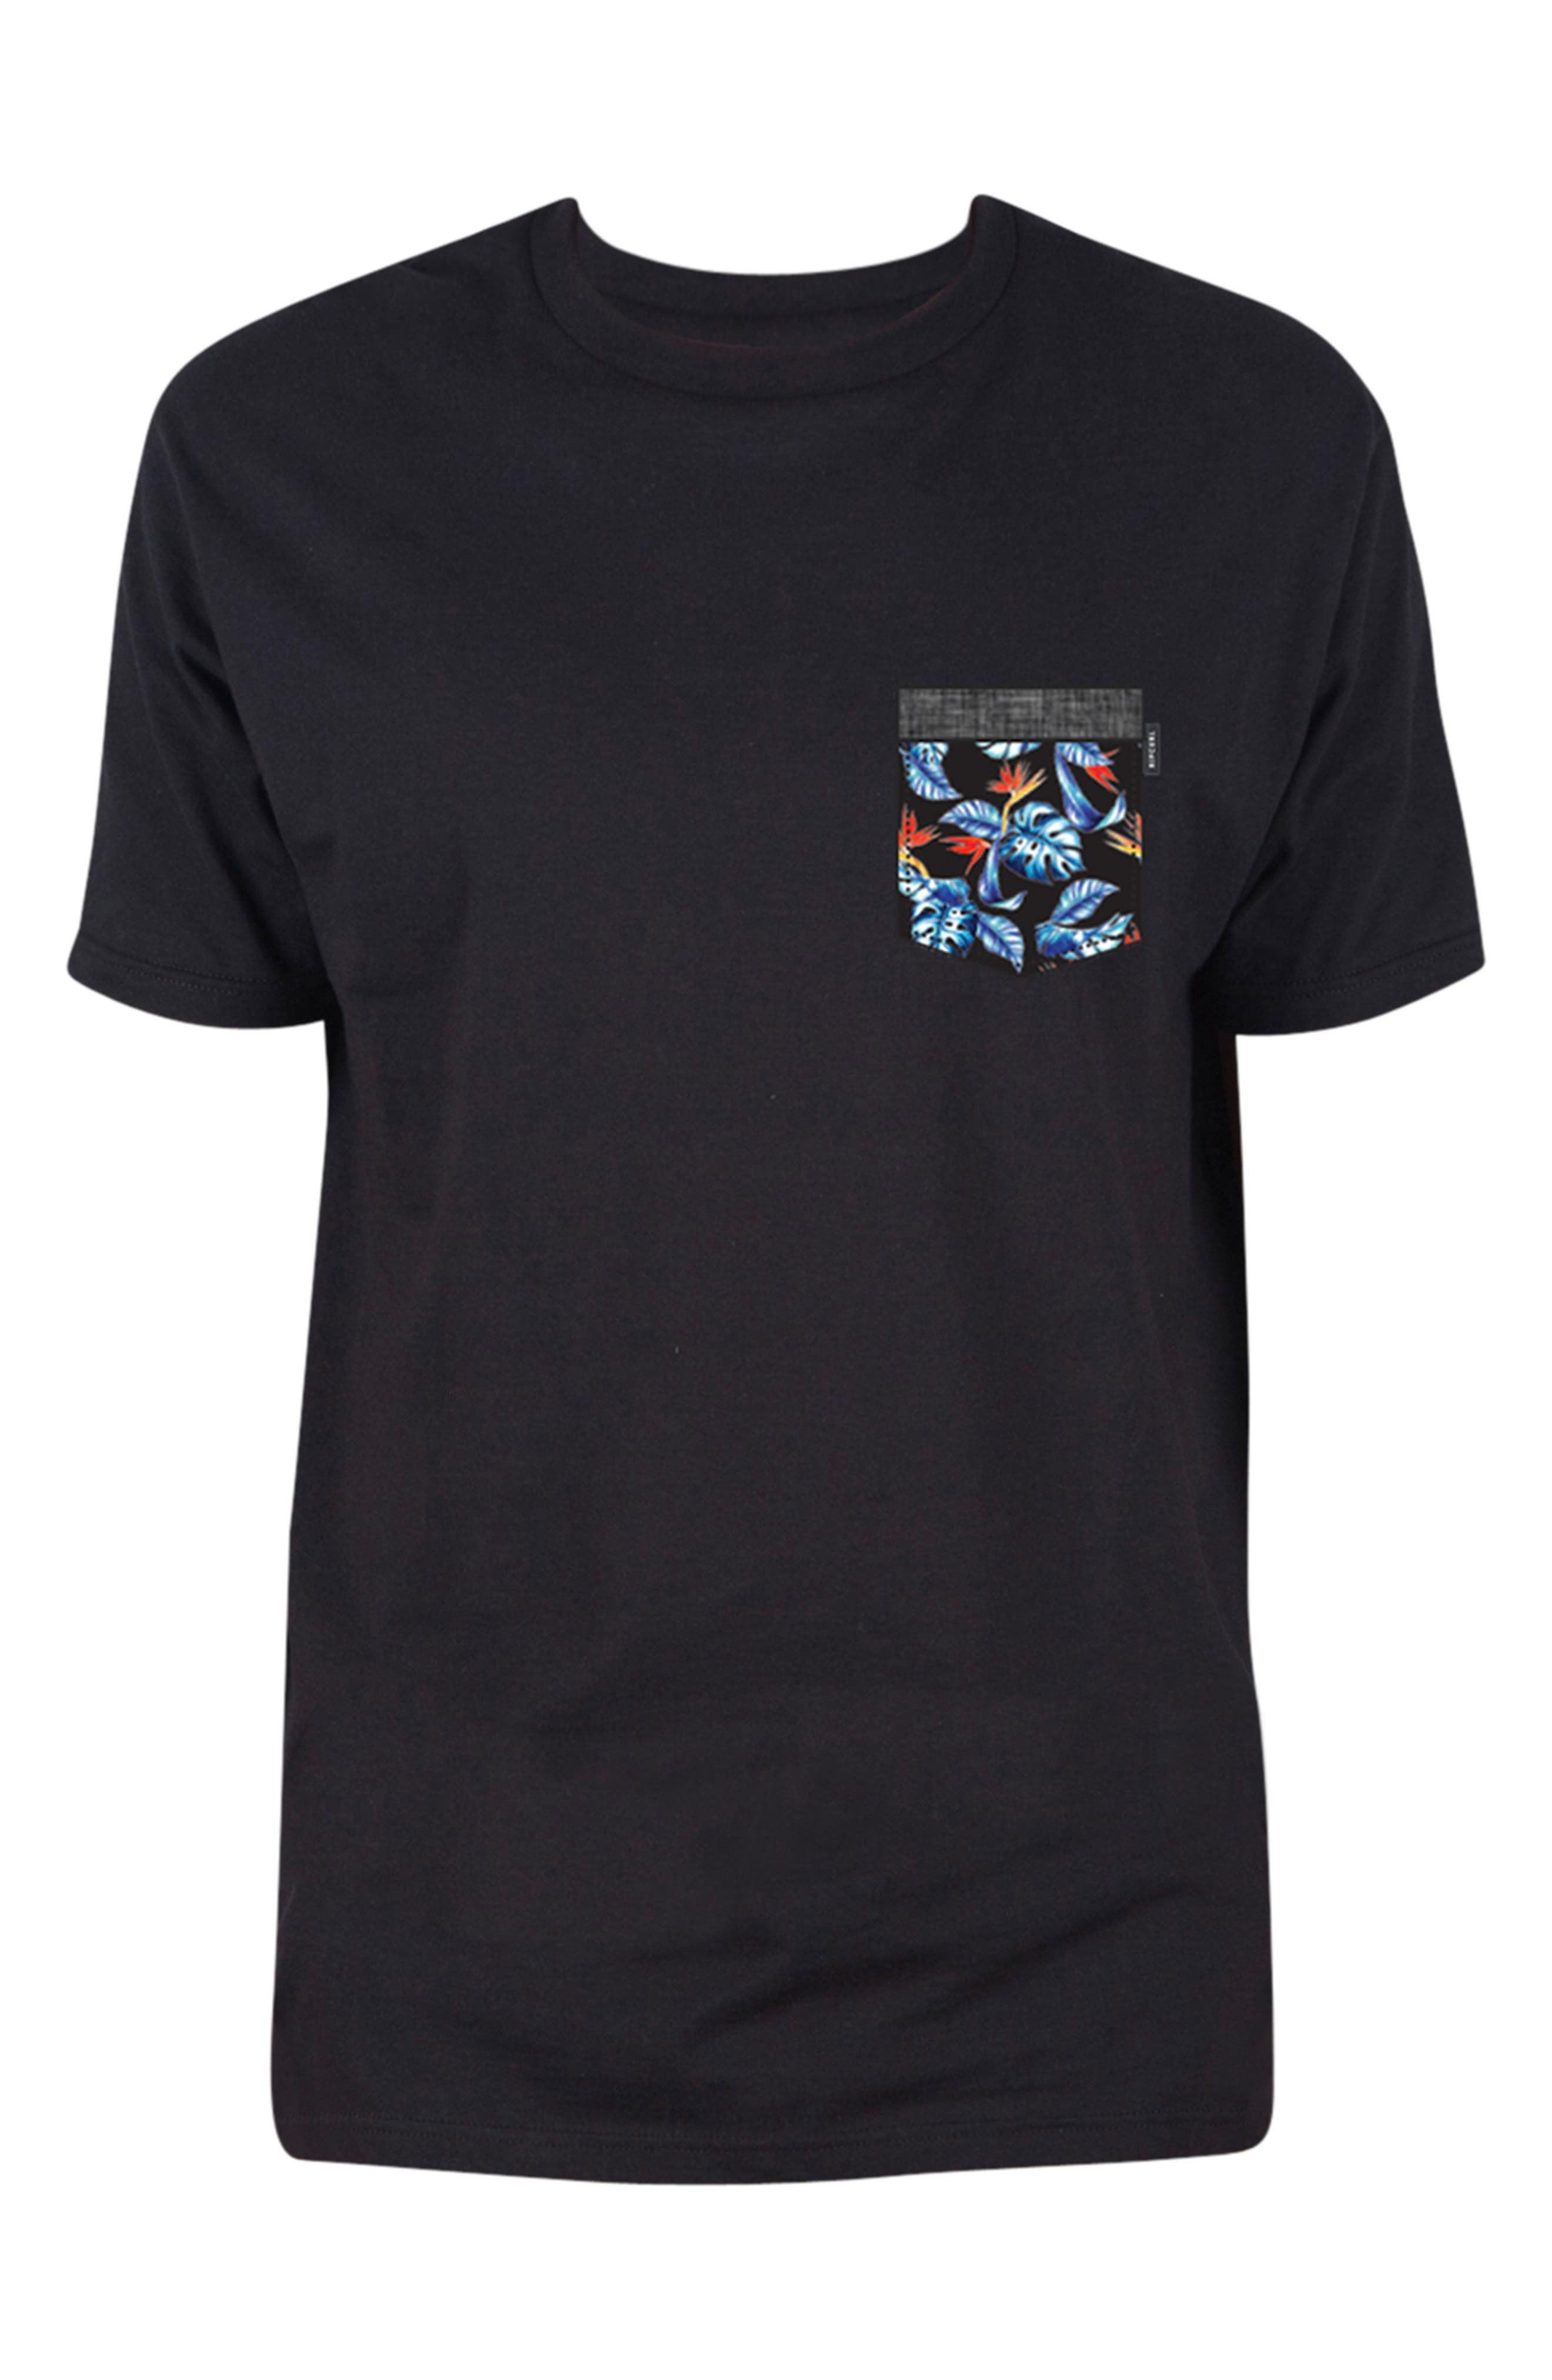 Mack Pocket T-Shirt,                             Main thumbnail 1, color,                             001